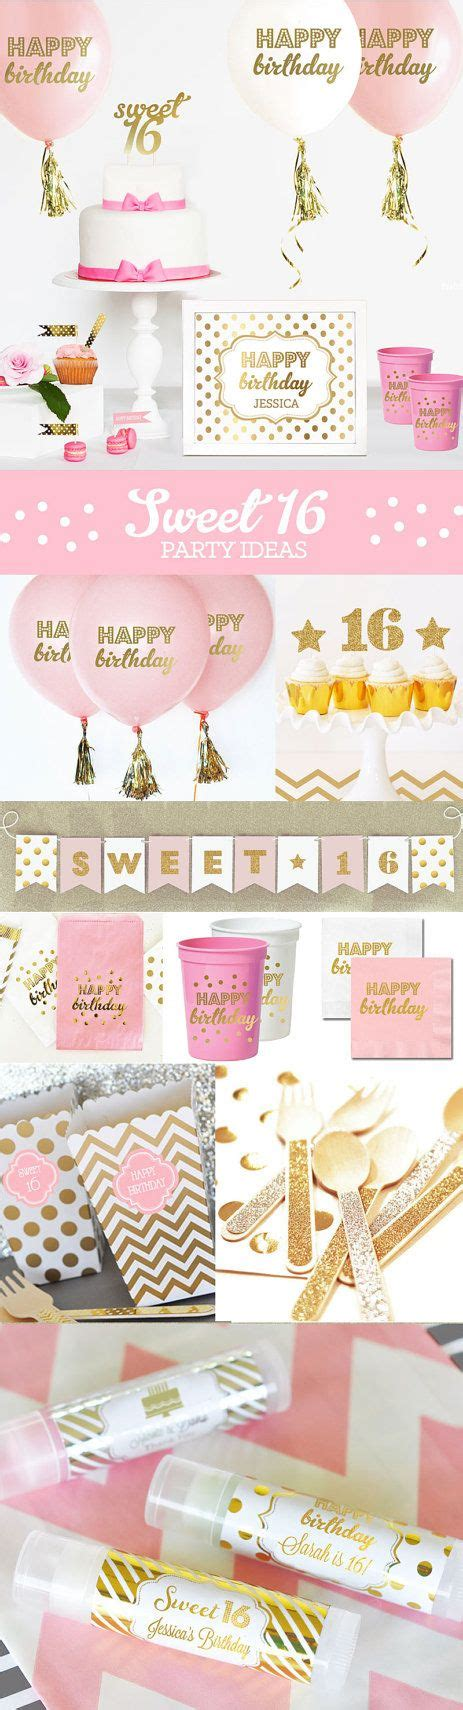 Sweet 16 Birthday Giveaways - best 25 sweet 16 parties ideas on pinterest sweet sixteen sweet 16 party themes